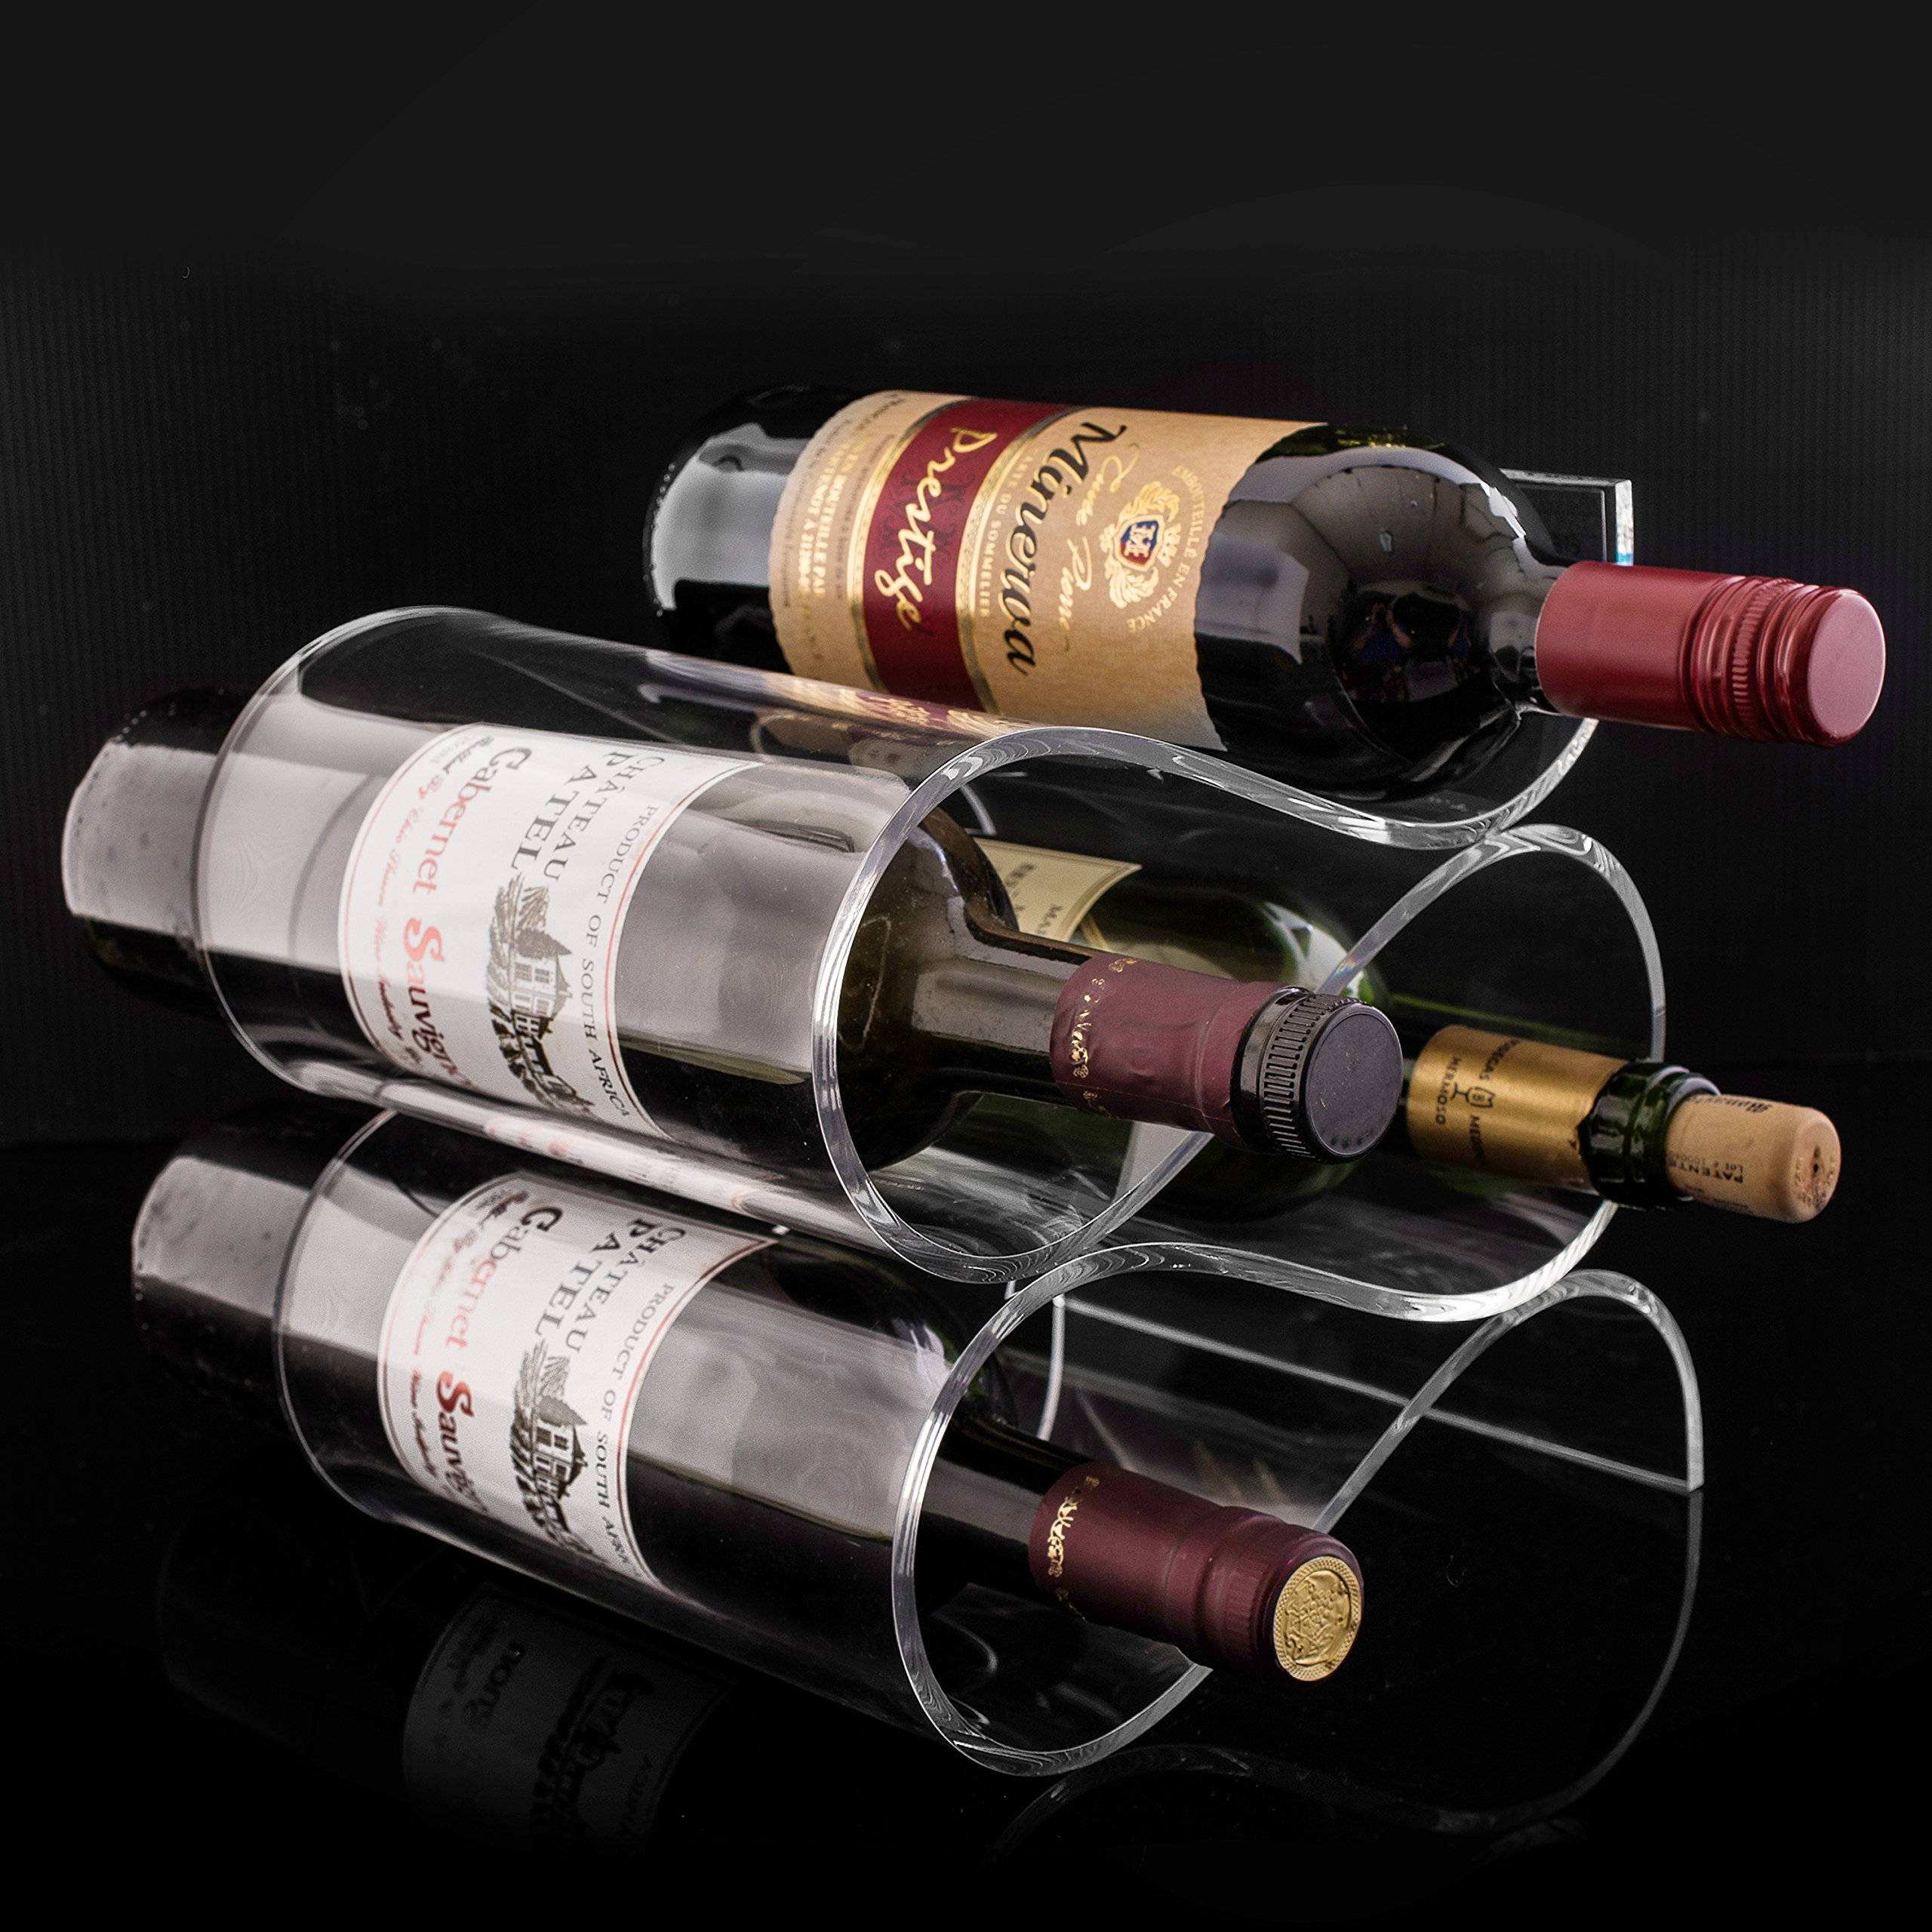 Premium Clear Acrylic Wave Design Countertop Wine Bottle Holder Rack - Holds up to 4 Bottles